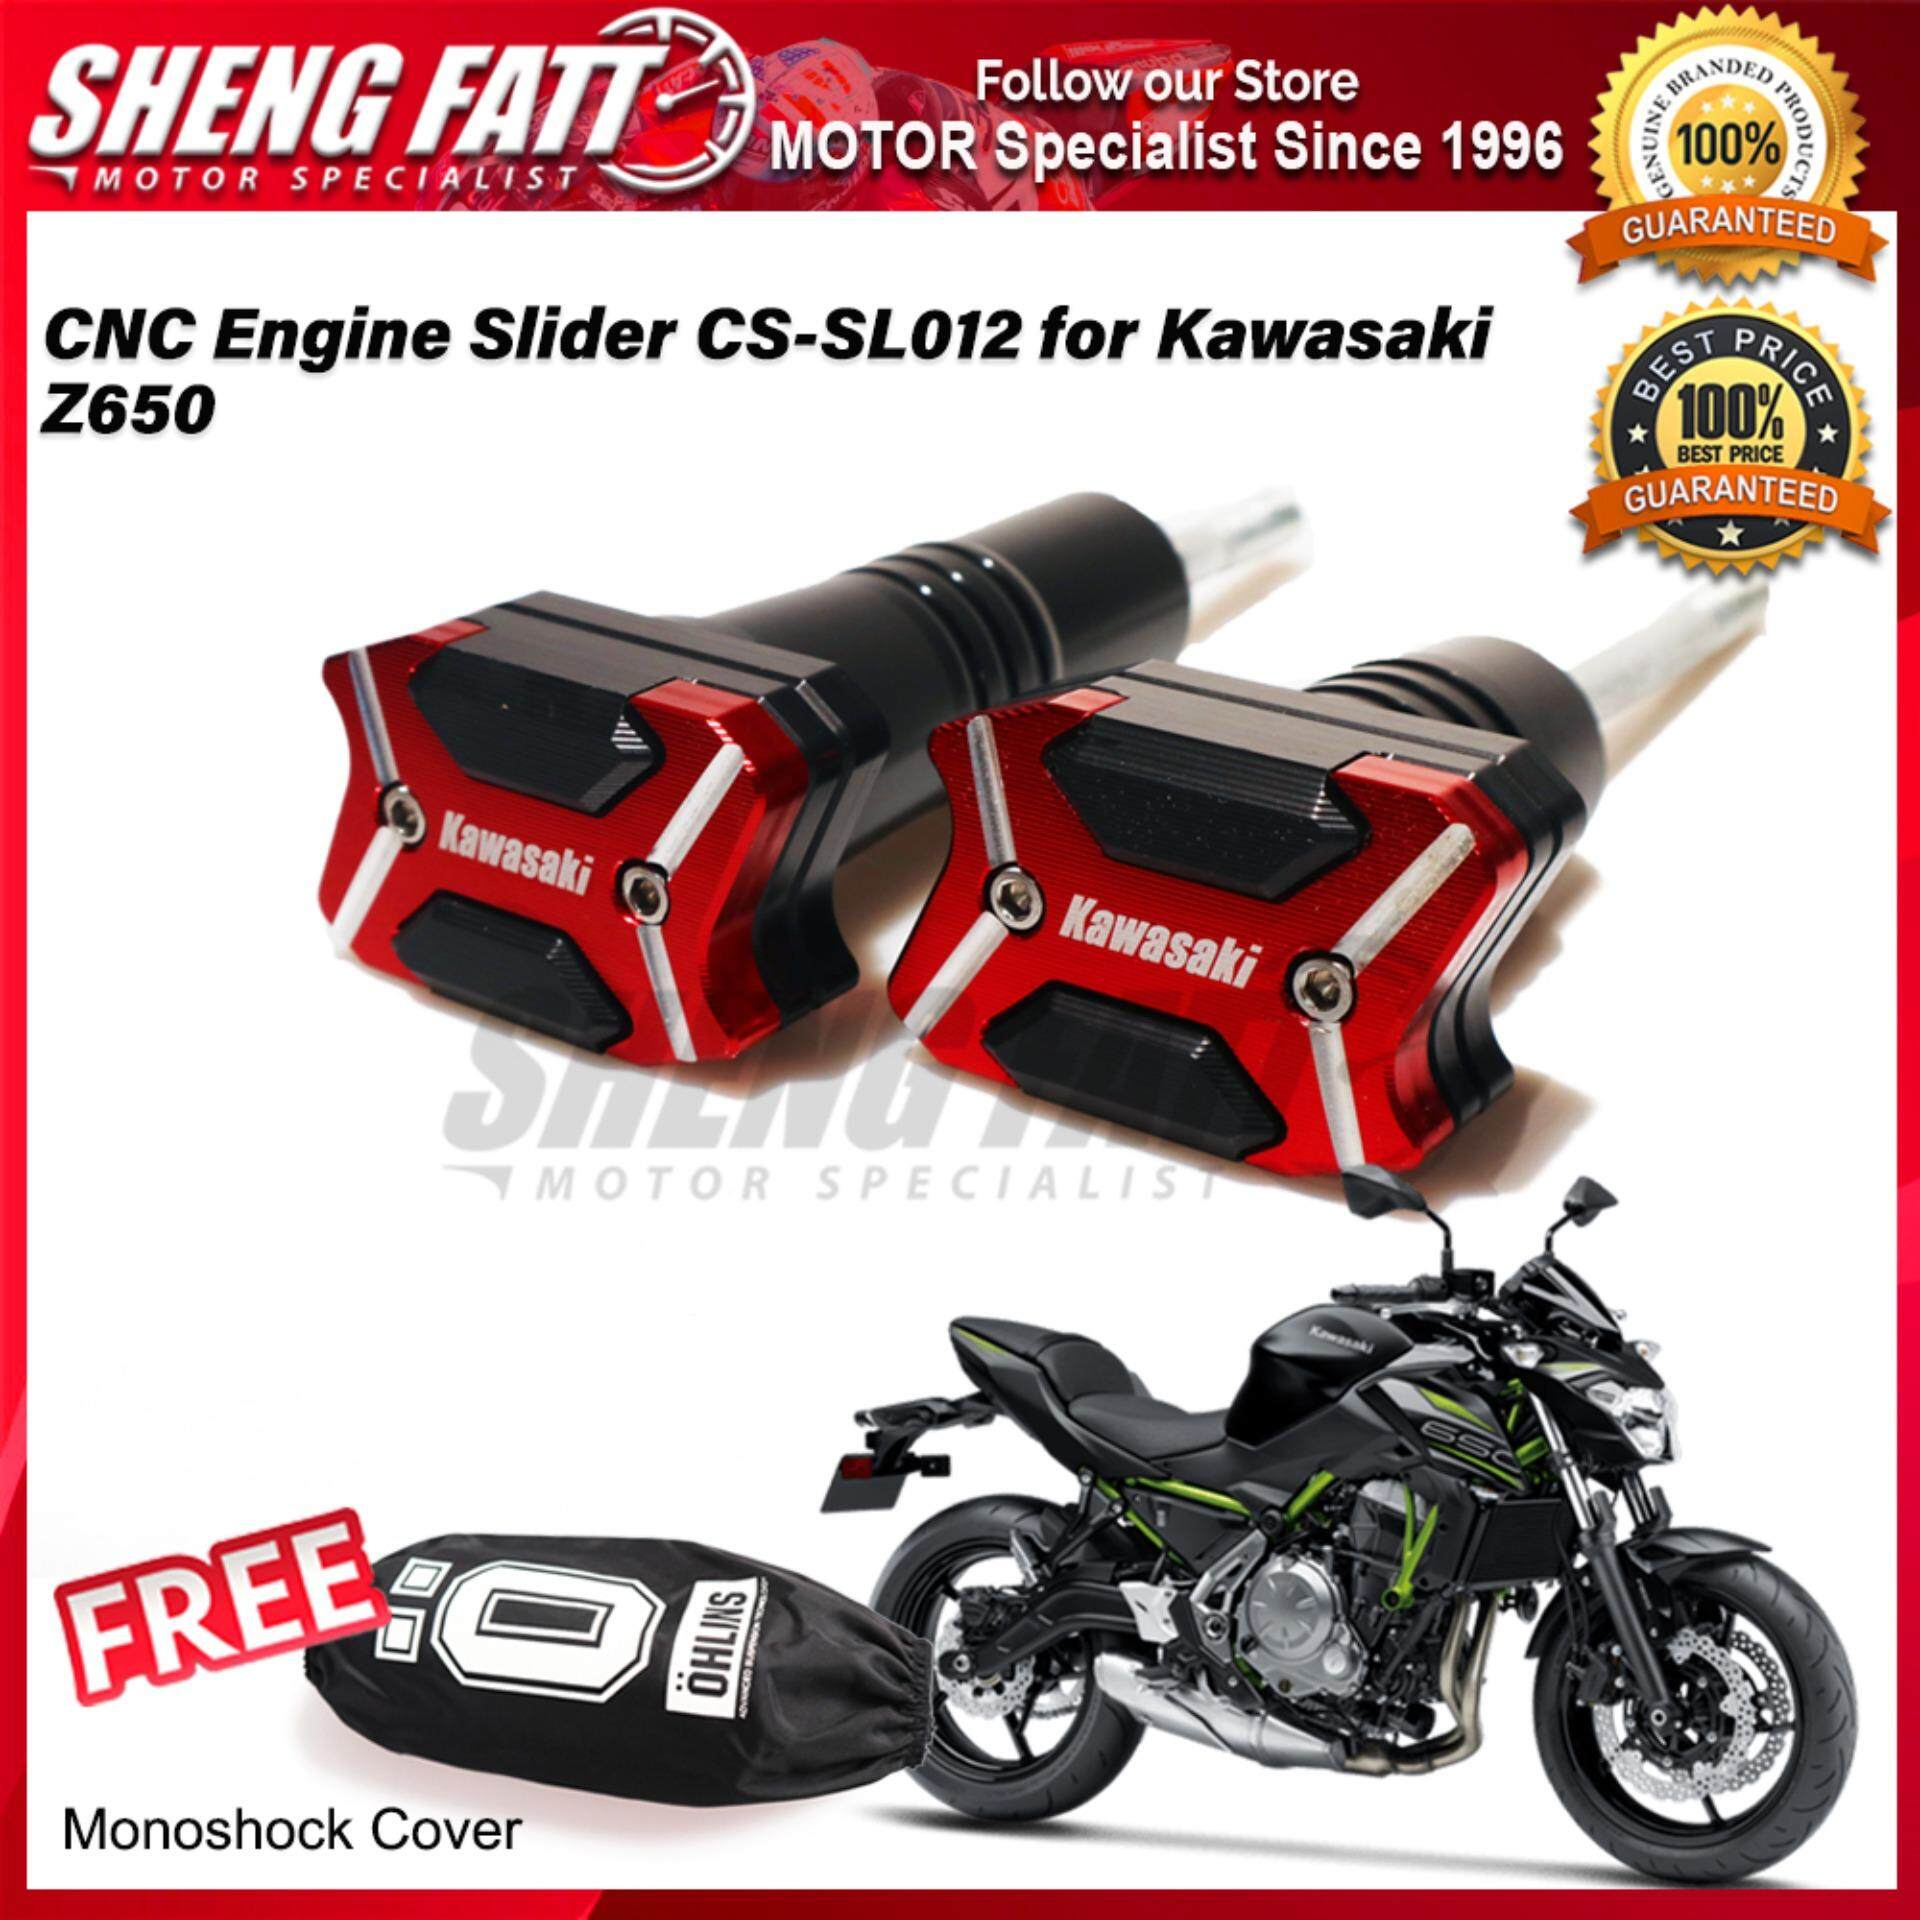 CNC Engine Slider CS-SL012 for Kawasaki Z650 FREE Mono Shock Monoshock Cover